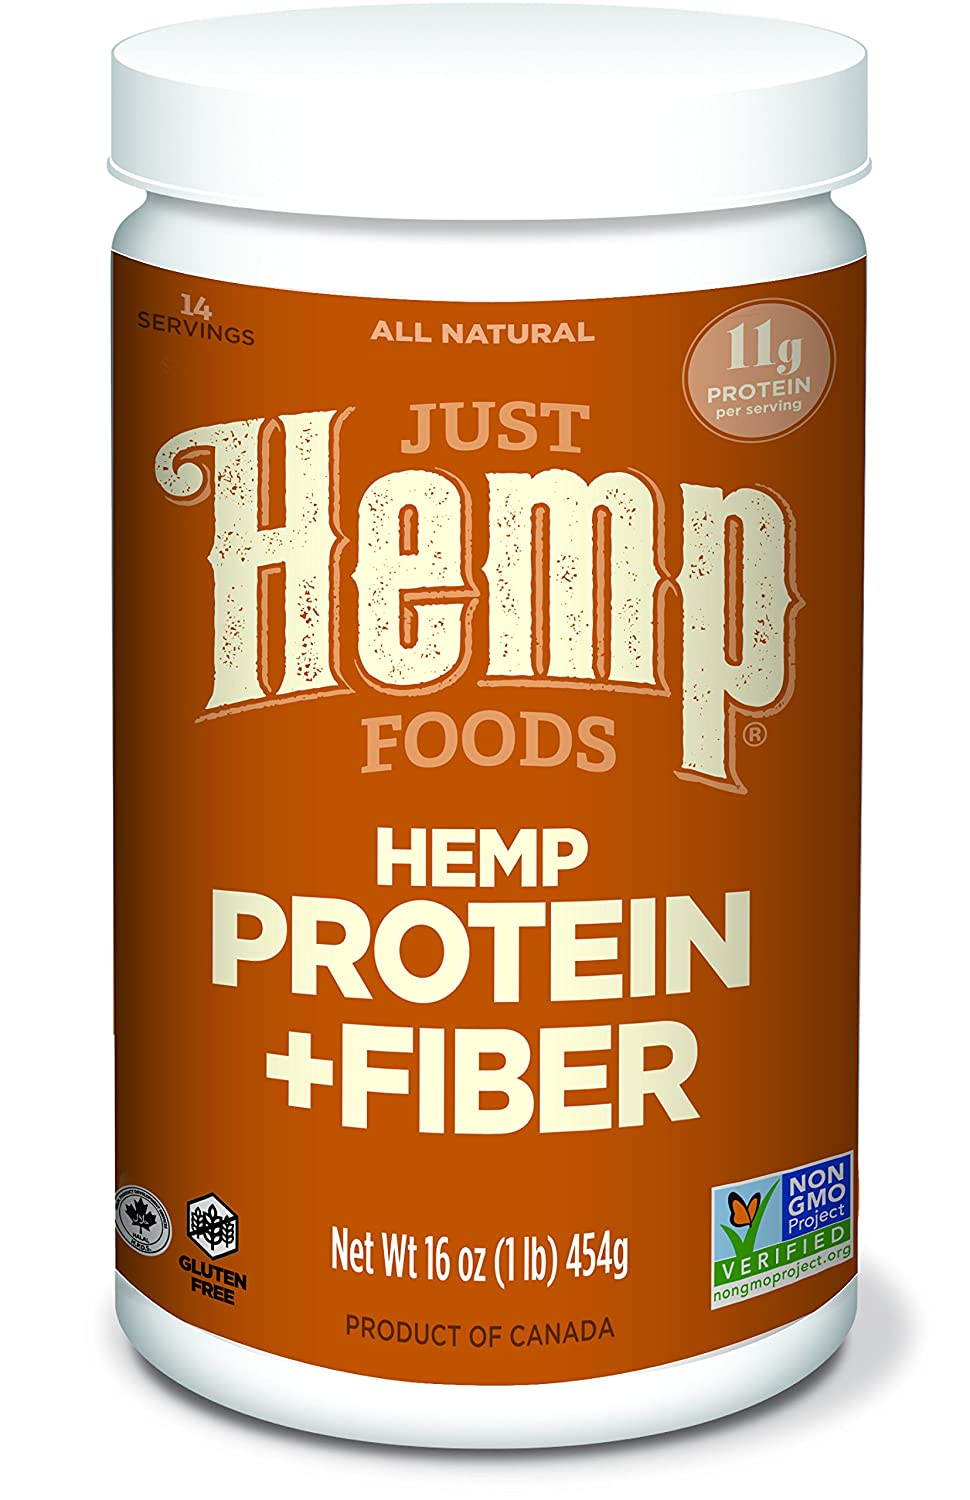 Just Hemp Foods Hemp Protein Powder Plus Fiber, 16oz; Non-GMO Verified with 11g of Protein & 11g of Fiber per Serving – Packaging May Vary